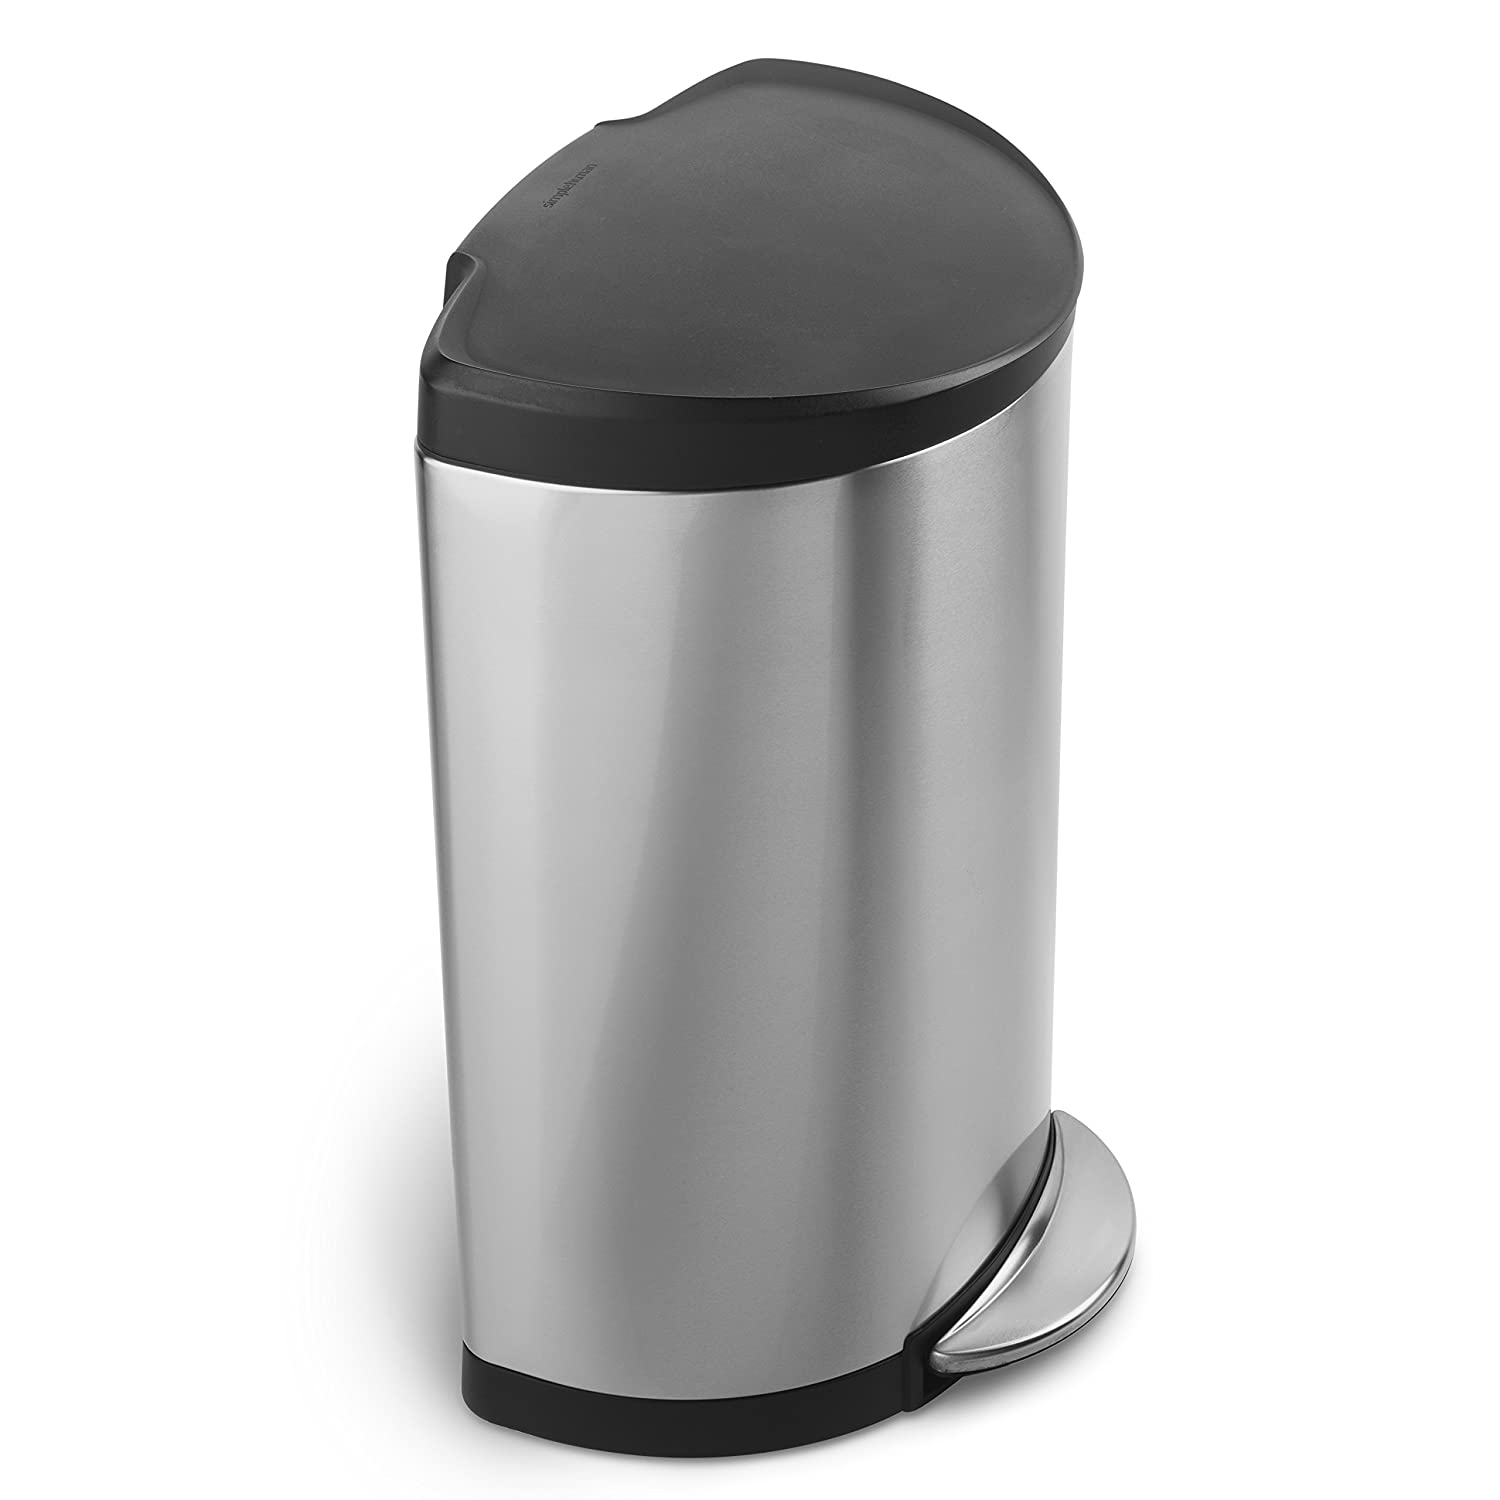 Kitchen Garbage Can Amazoncom Simplehuman Semi Round Step Trash Can Stainless Steel